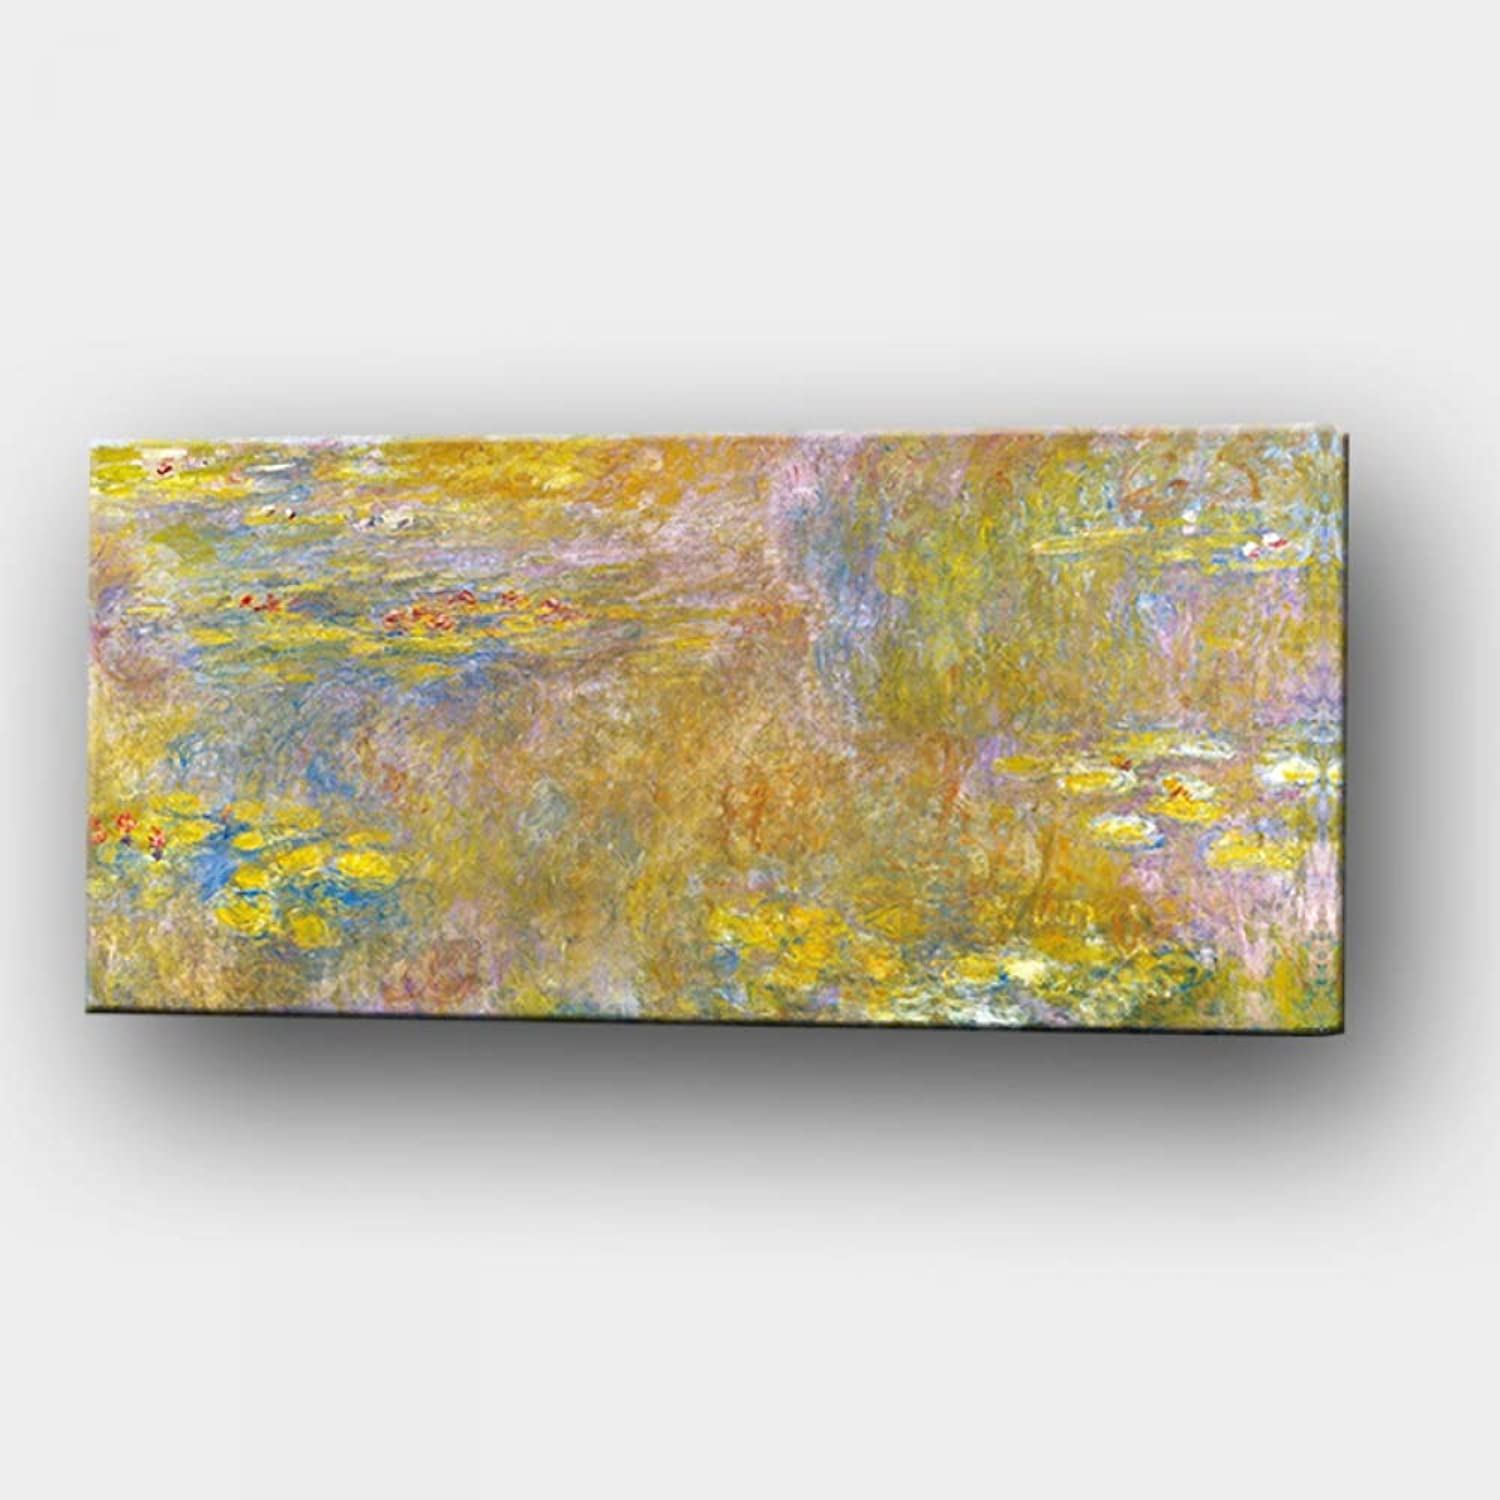 QIAISHI Print Wall Art Canvas Oil Painting gold Lotus Landscape Oil Painting Impressionist Poster Picture for Living Room